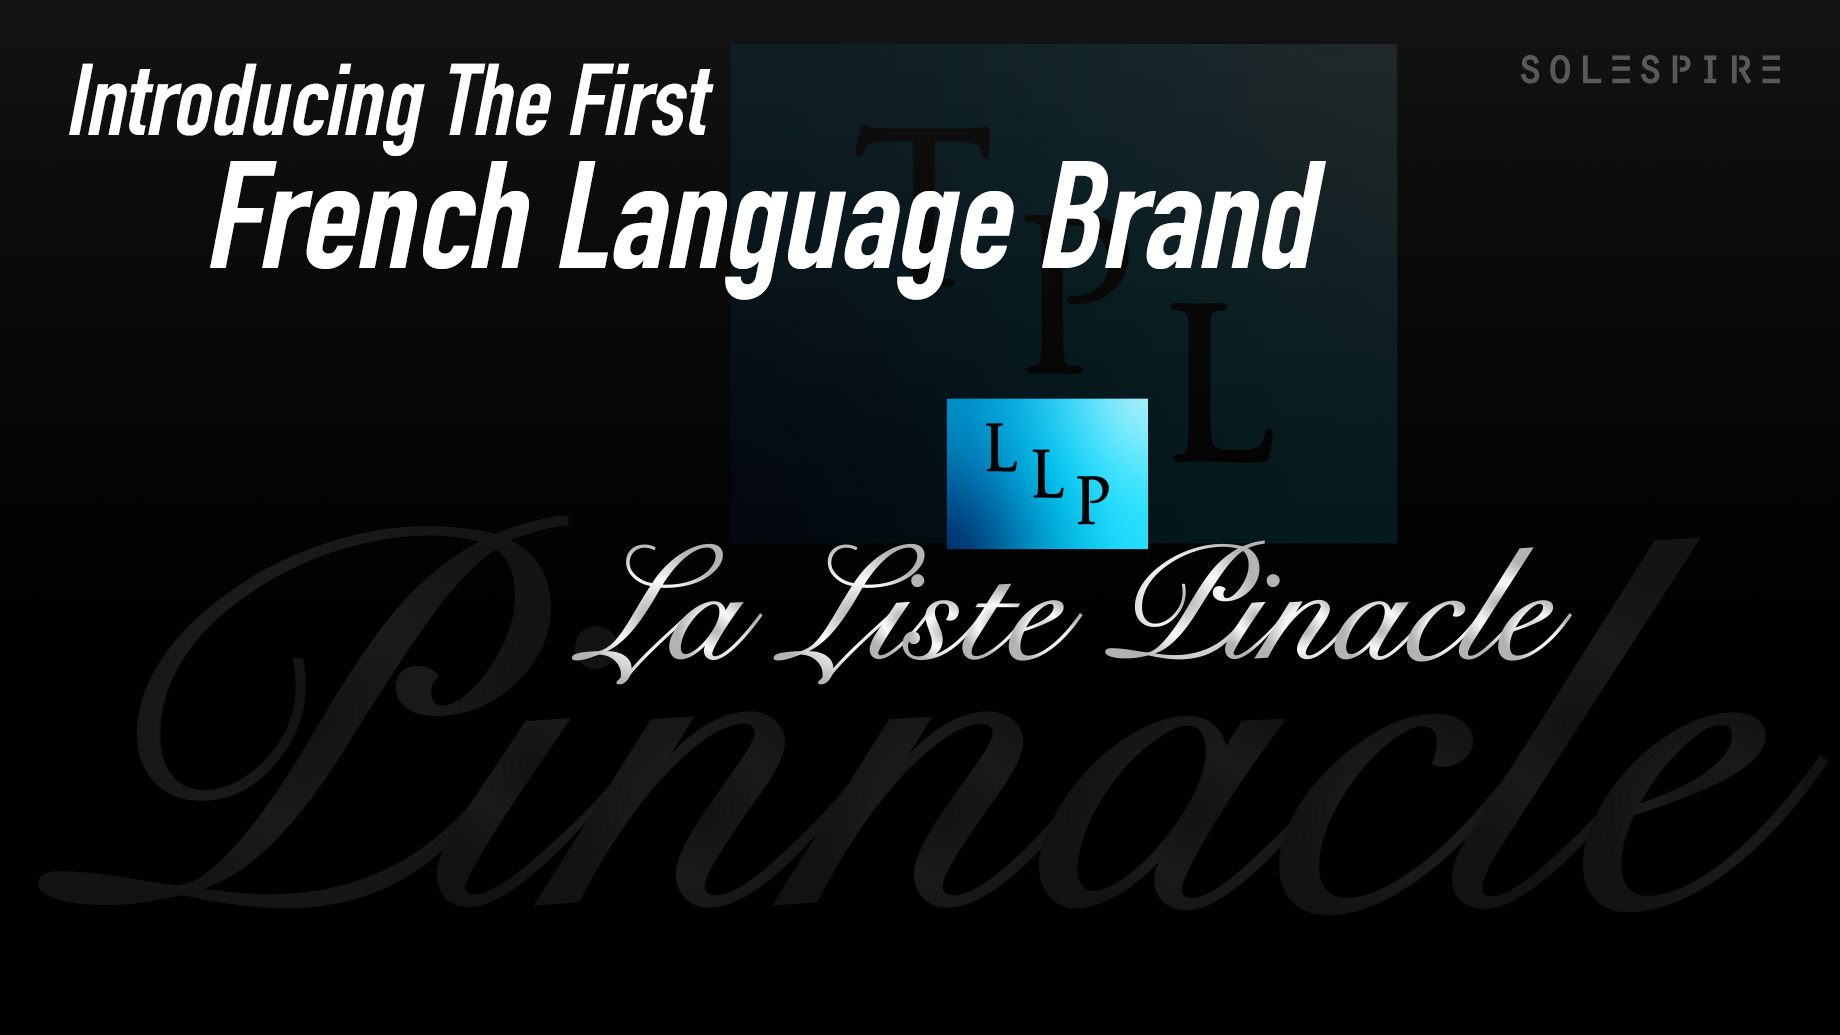 La Liste Pinacle - Solespire's First French Language Brand